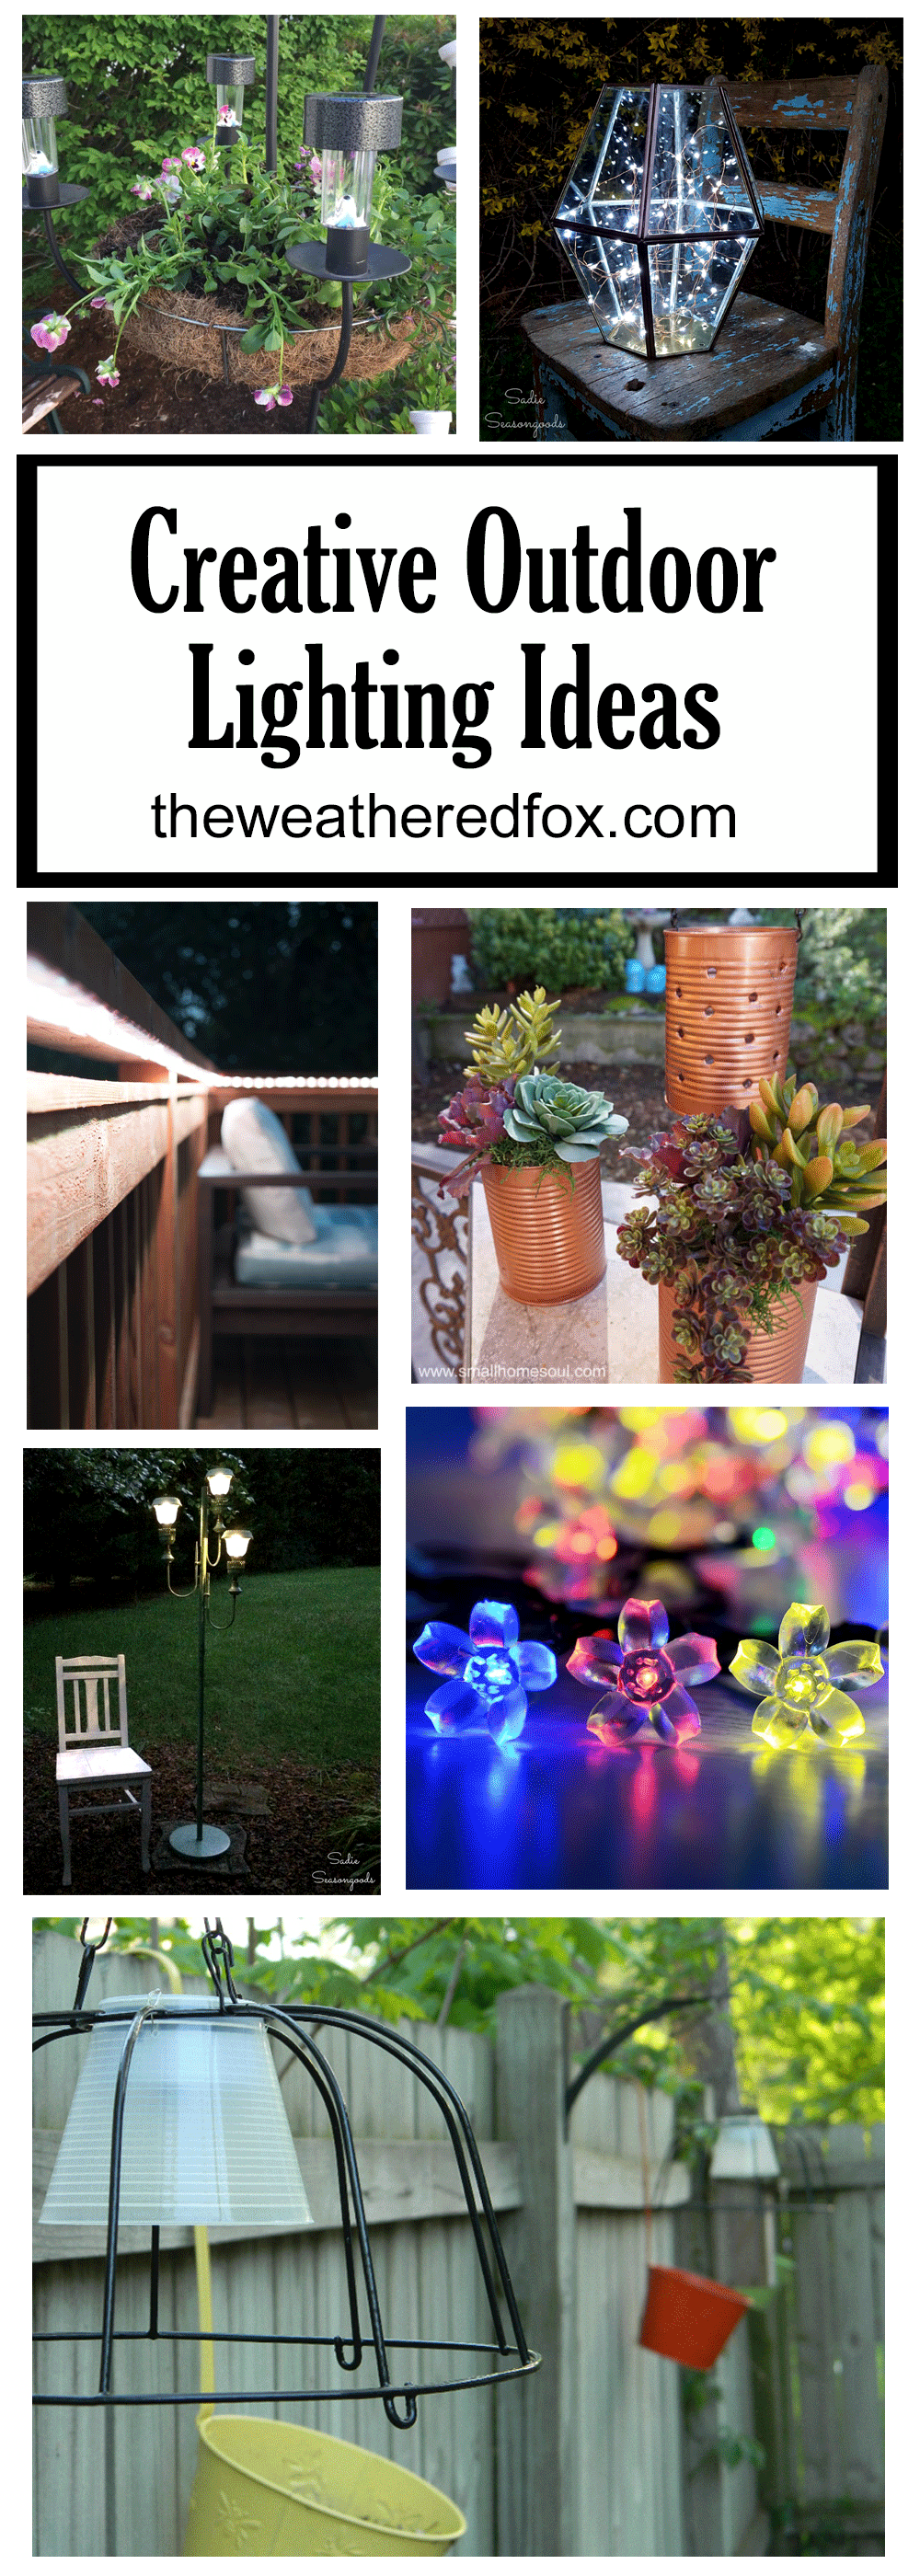 These 12 creative outdoor lighting ideas are sure to spark some inspiration into lighting up your own patio or deck! www.theweatheredfox.net